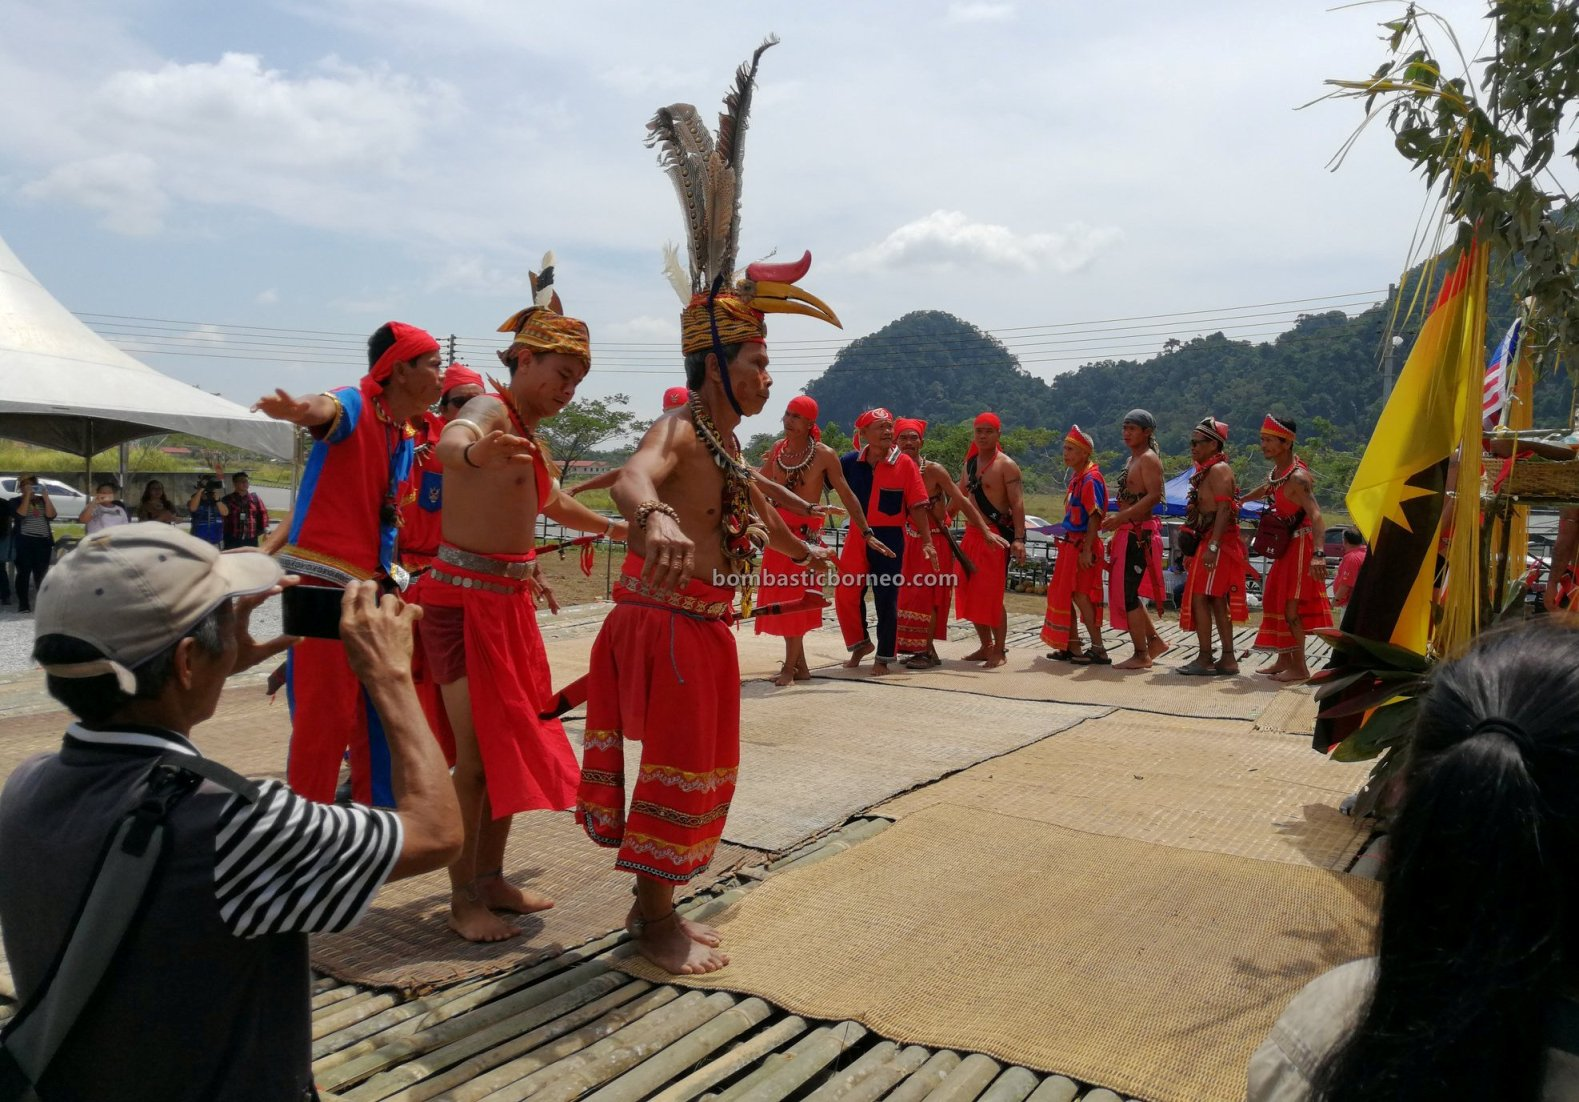 Pesta Nyarok Biya, Bengoh Dam Resettlement Scheme, authentic, backpackers, culture, Ceremony, dayak bidayuh, native, Gawai harvest festival, Kampung Semban, Borneo, Sarawak, Kuching, Padawan, tourist attraction, cross border,